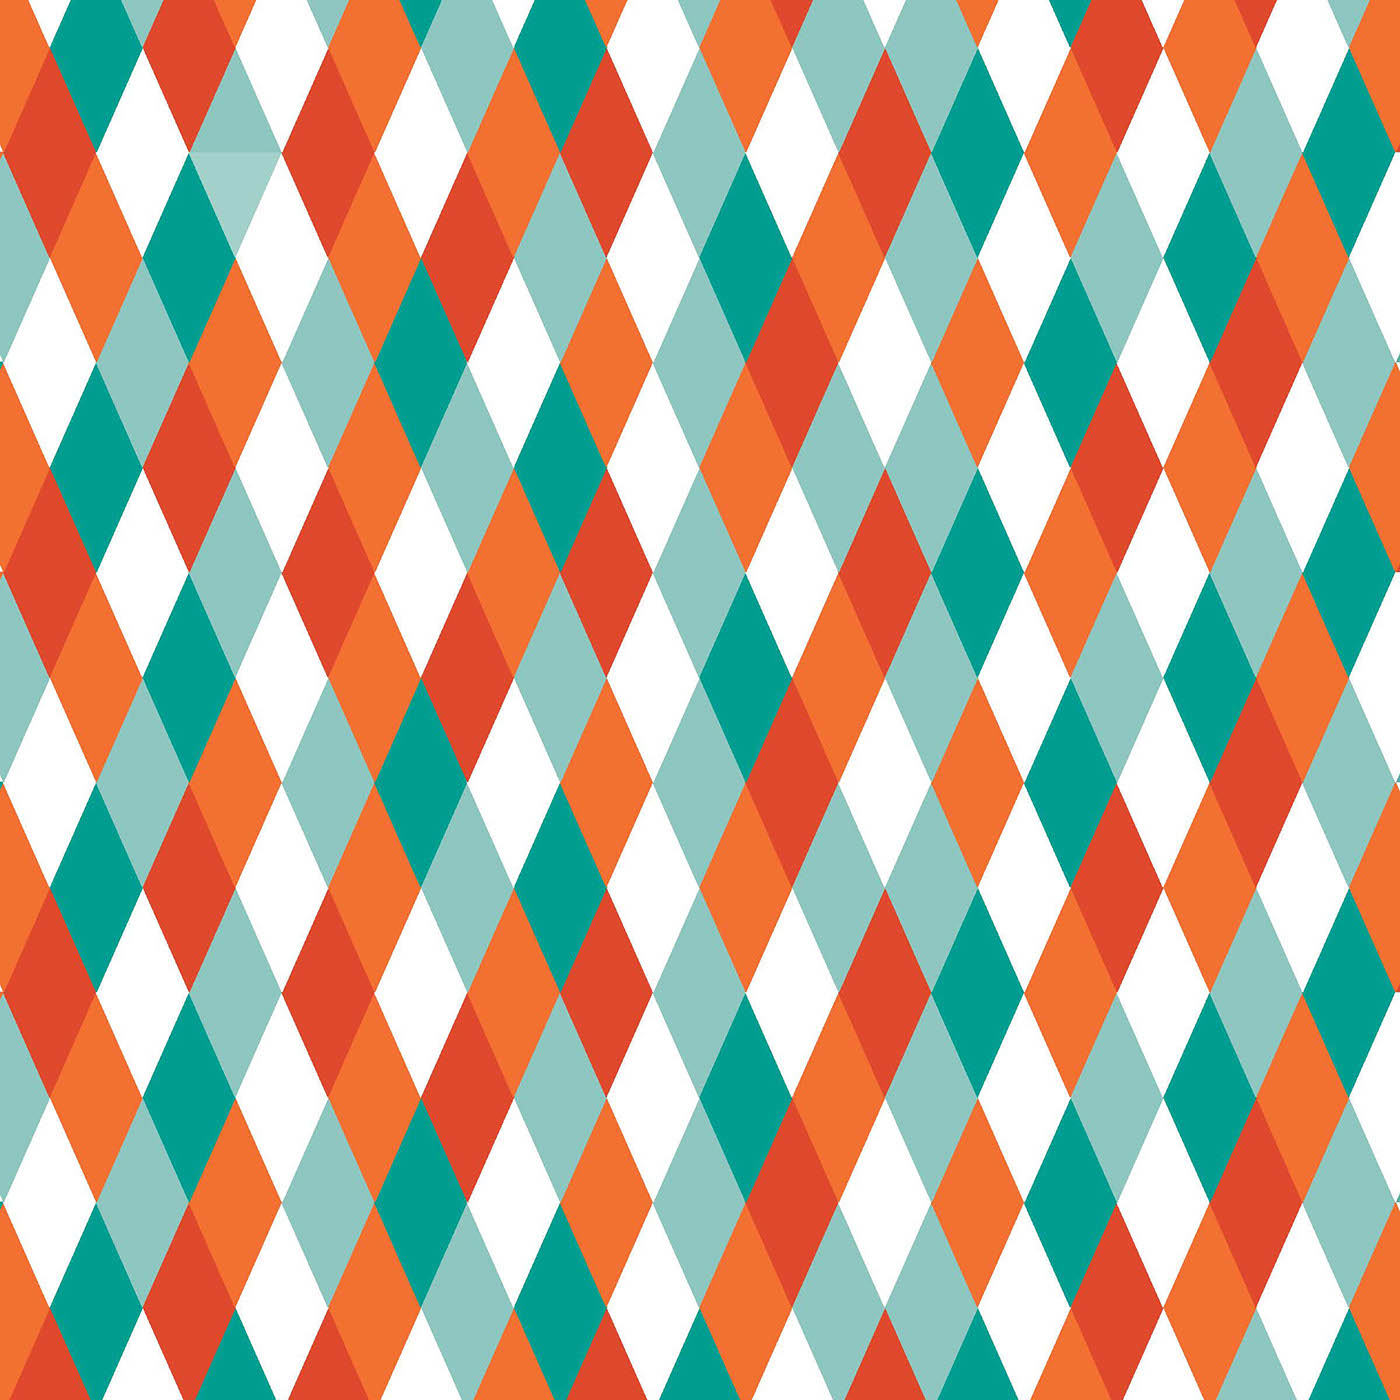 Geometric Scrapbook Paper Designs On Behance